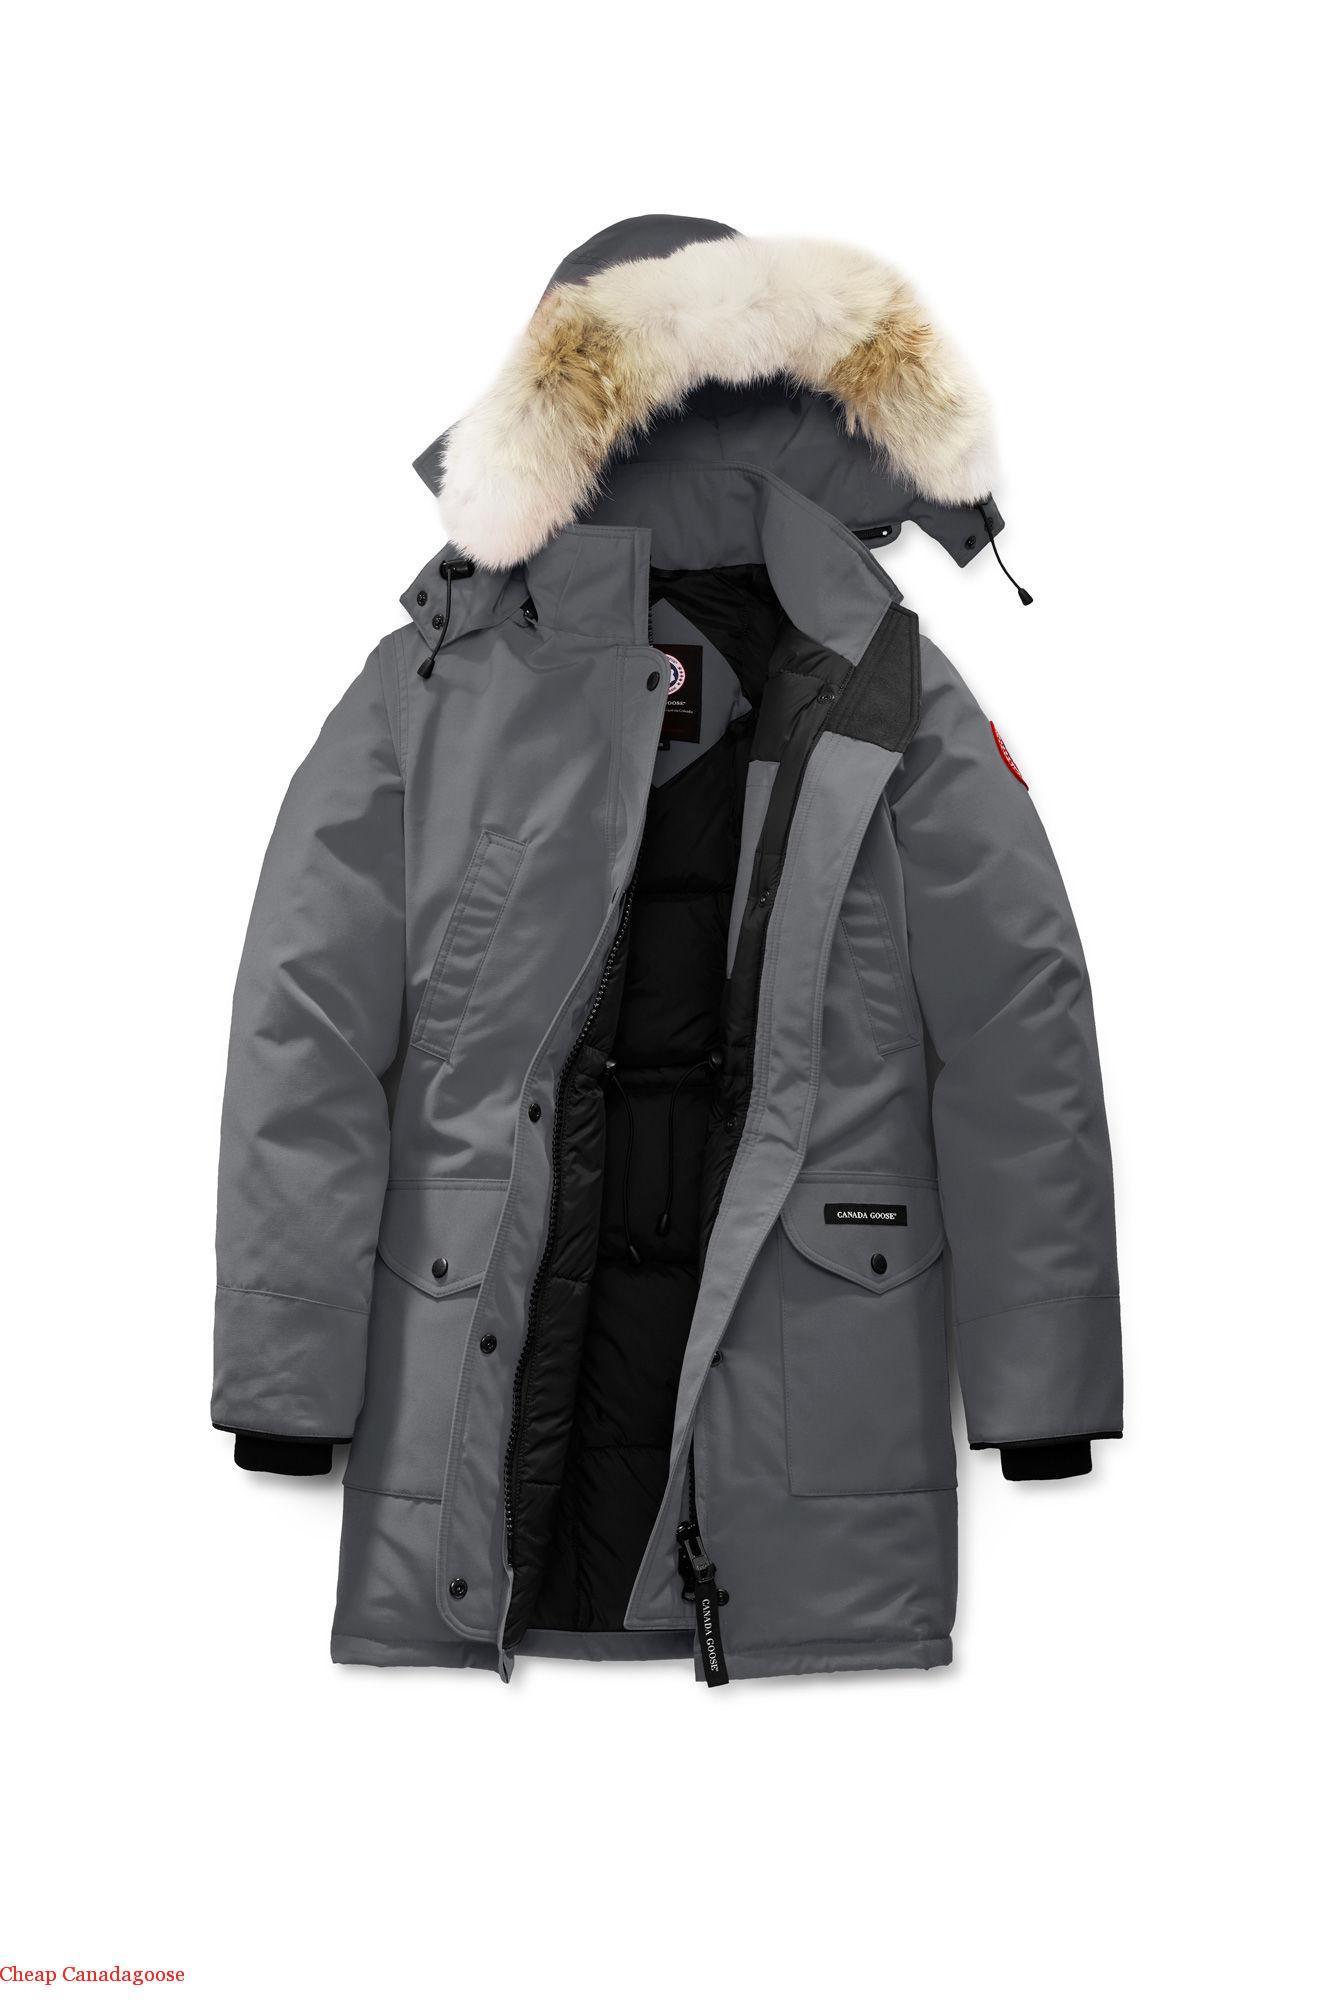 Cheap Canadagoose